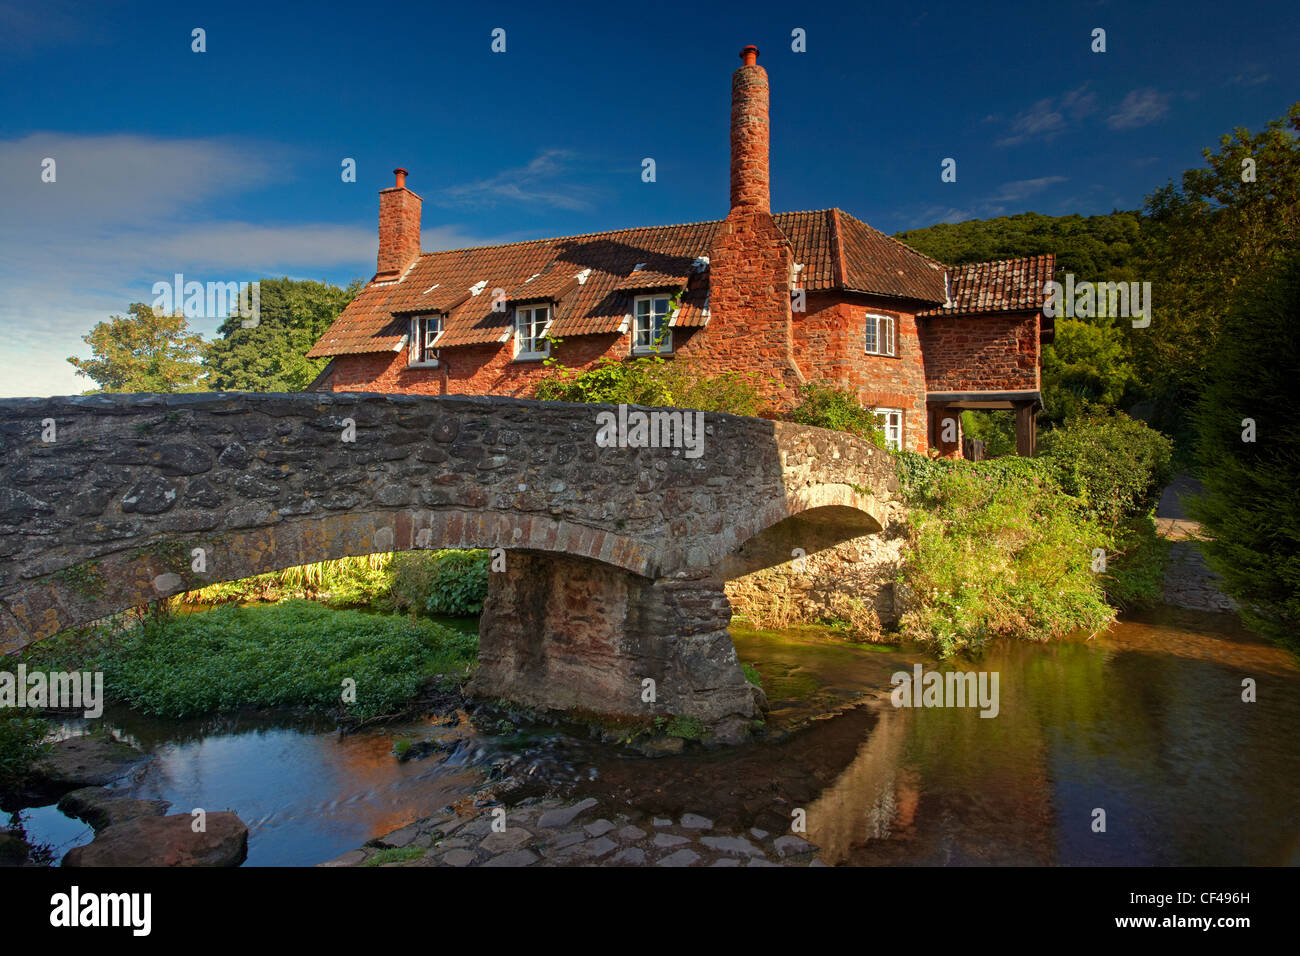 Red sandstone packhorse bridge over the River Aller by a pretty cottage on Exmoor. - Stock Image